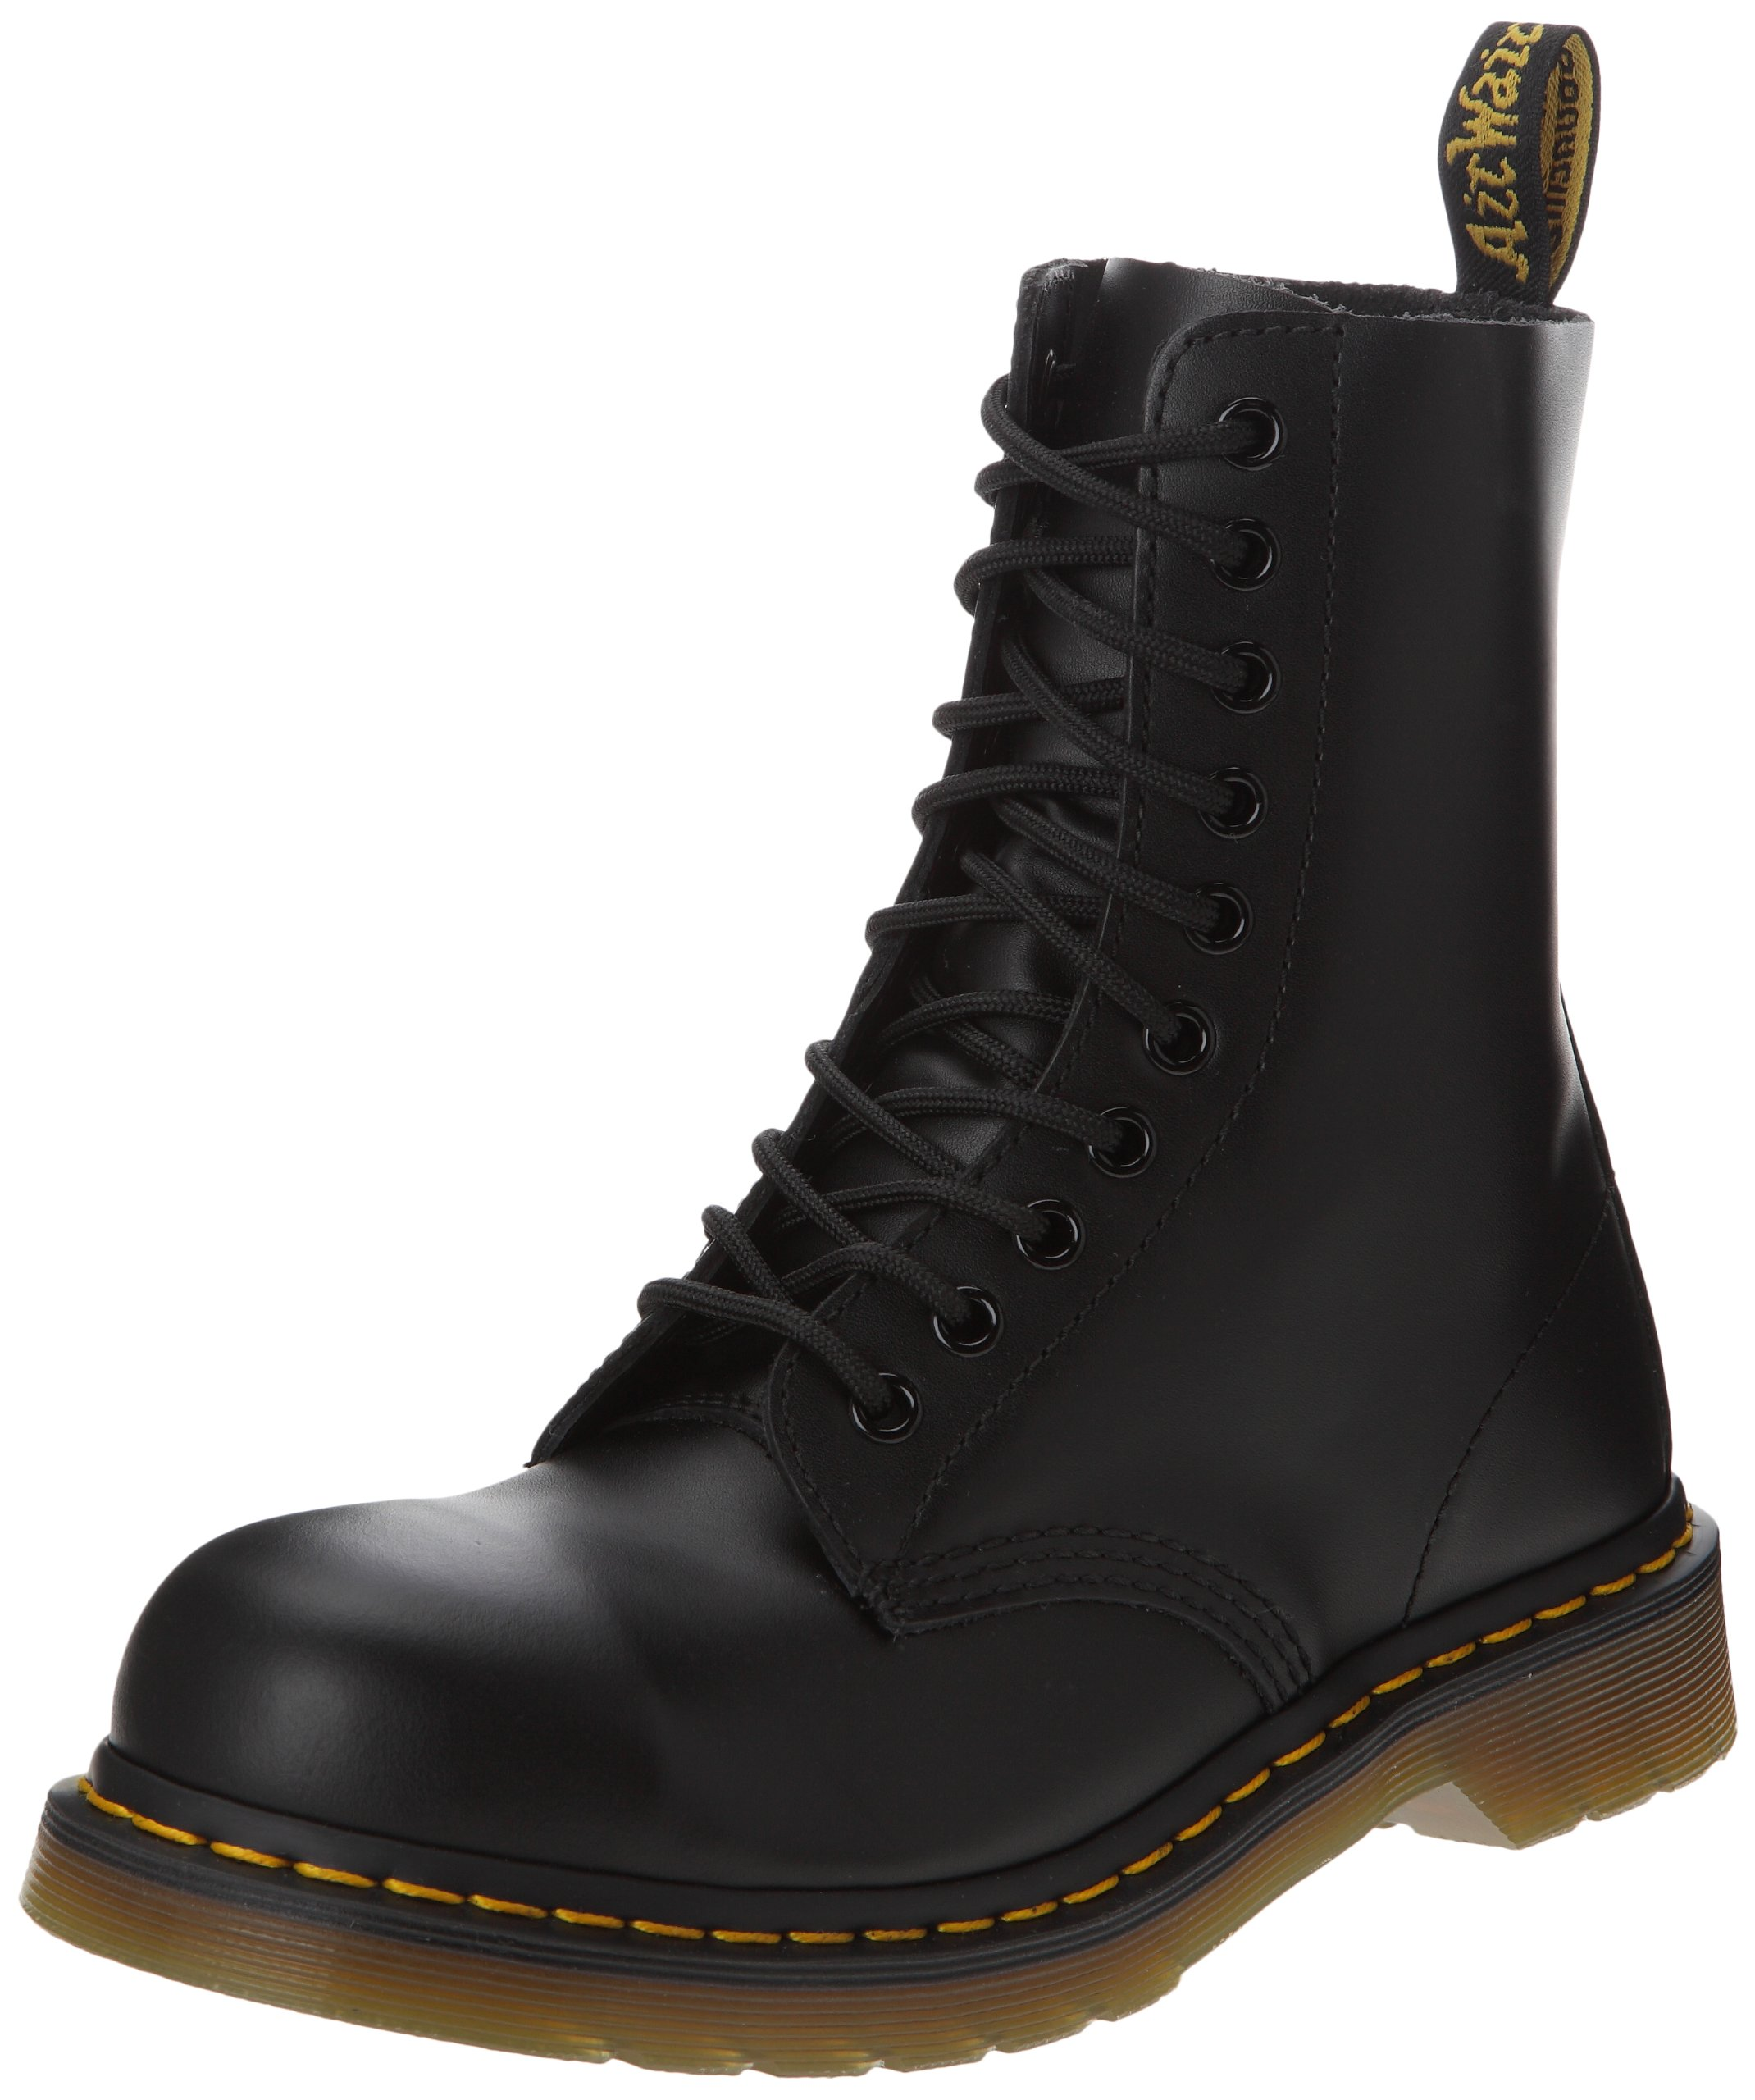 Dr. Martens Classic 1919 Steel Toe Boot,Black Fine Haircell,9 UK (US Men's 10 M/Women's 11 M)